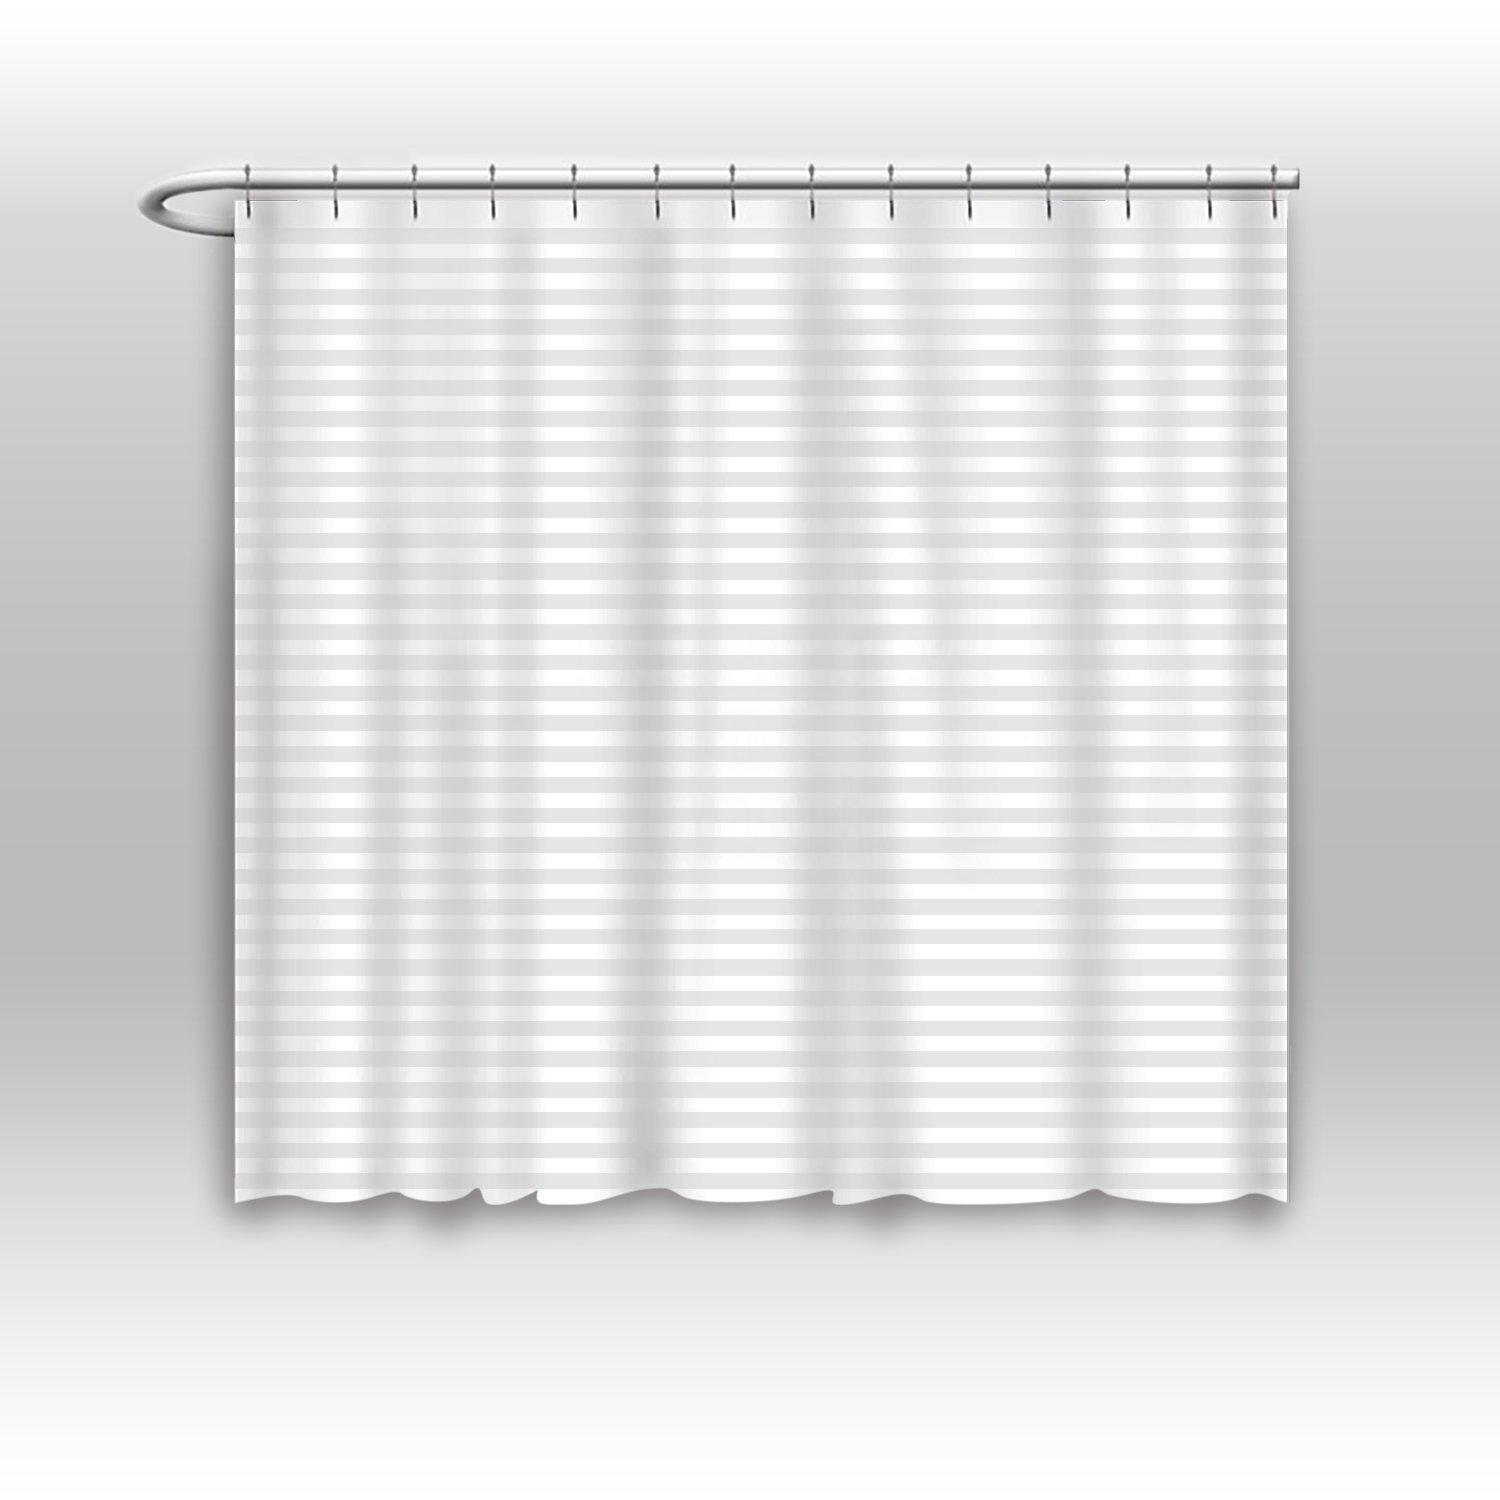 Vandarllin Hotel Quality Resistant Washable Fabric Shower Curtain Liner -Extra Wide 84 x 72, Water-Repellent, Elegant White Tonal Damask Stripe, Eco Friendly & PVC-Free by Vandarllin